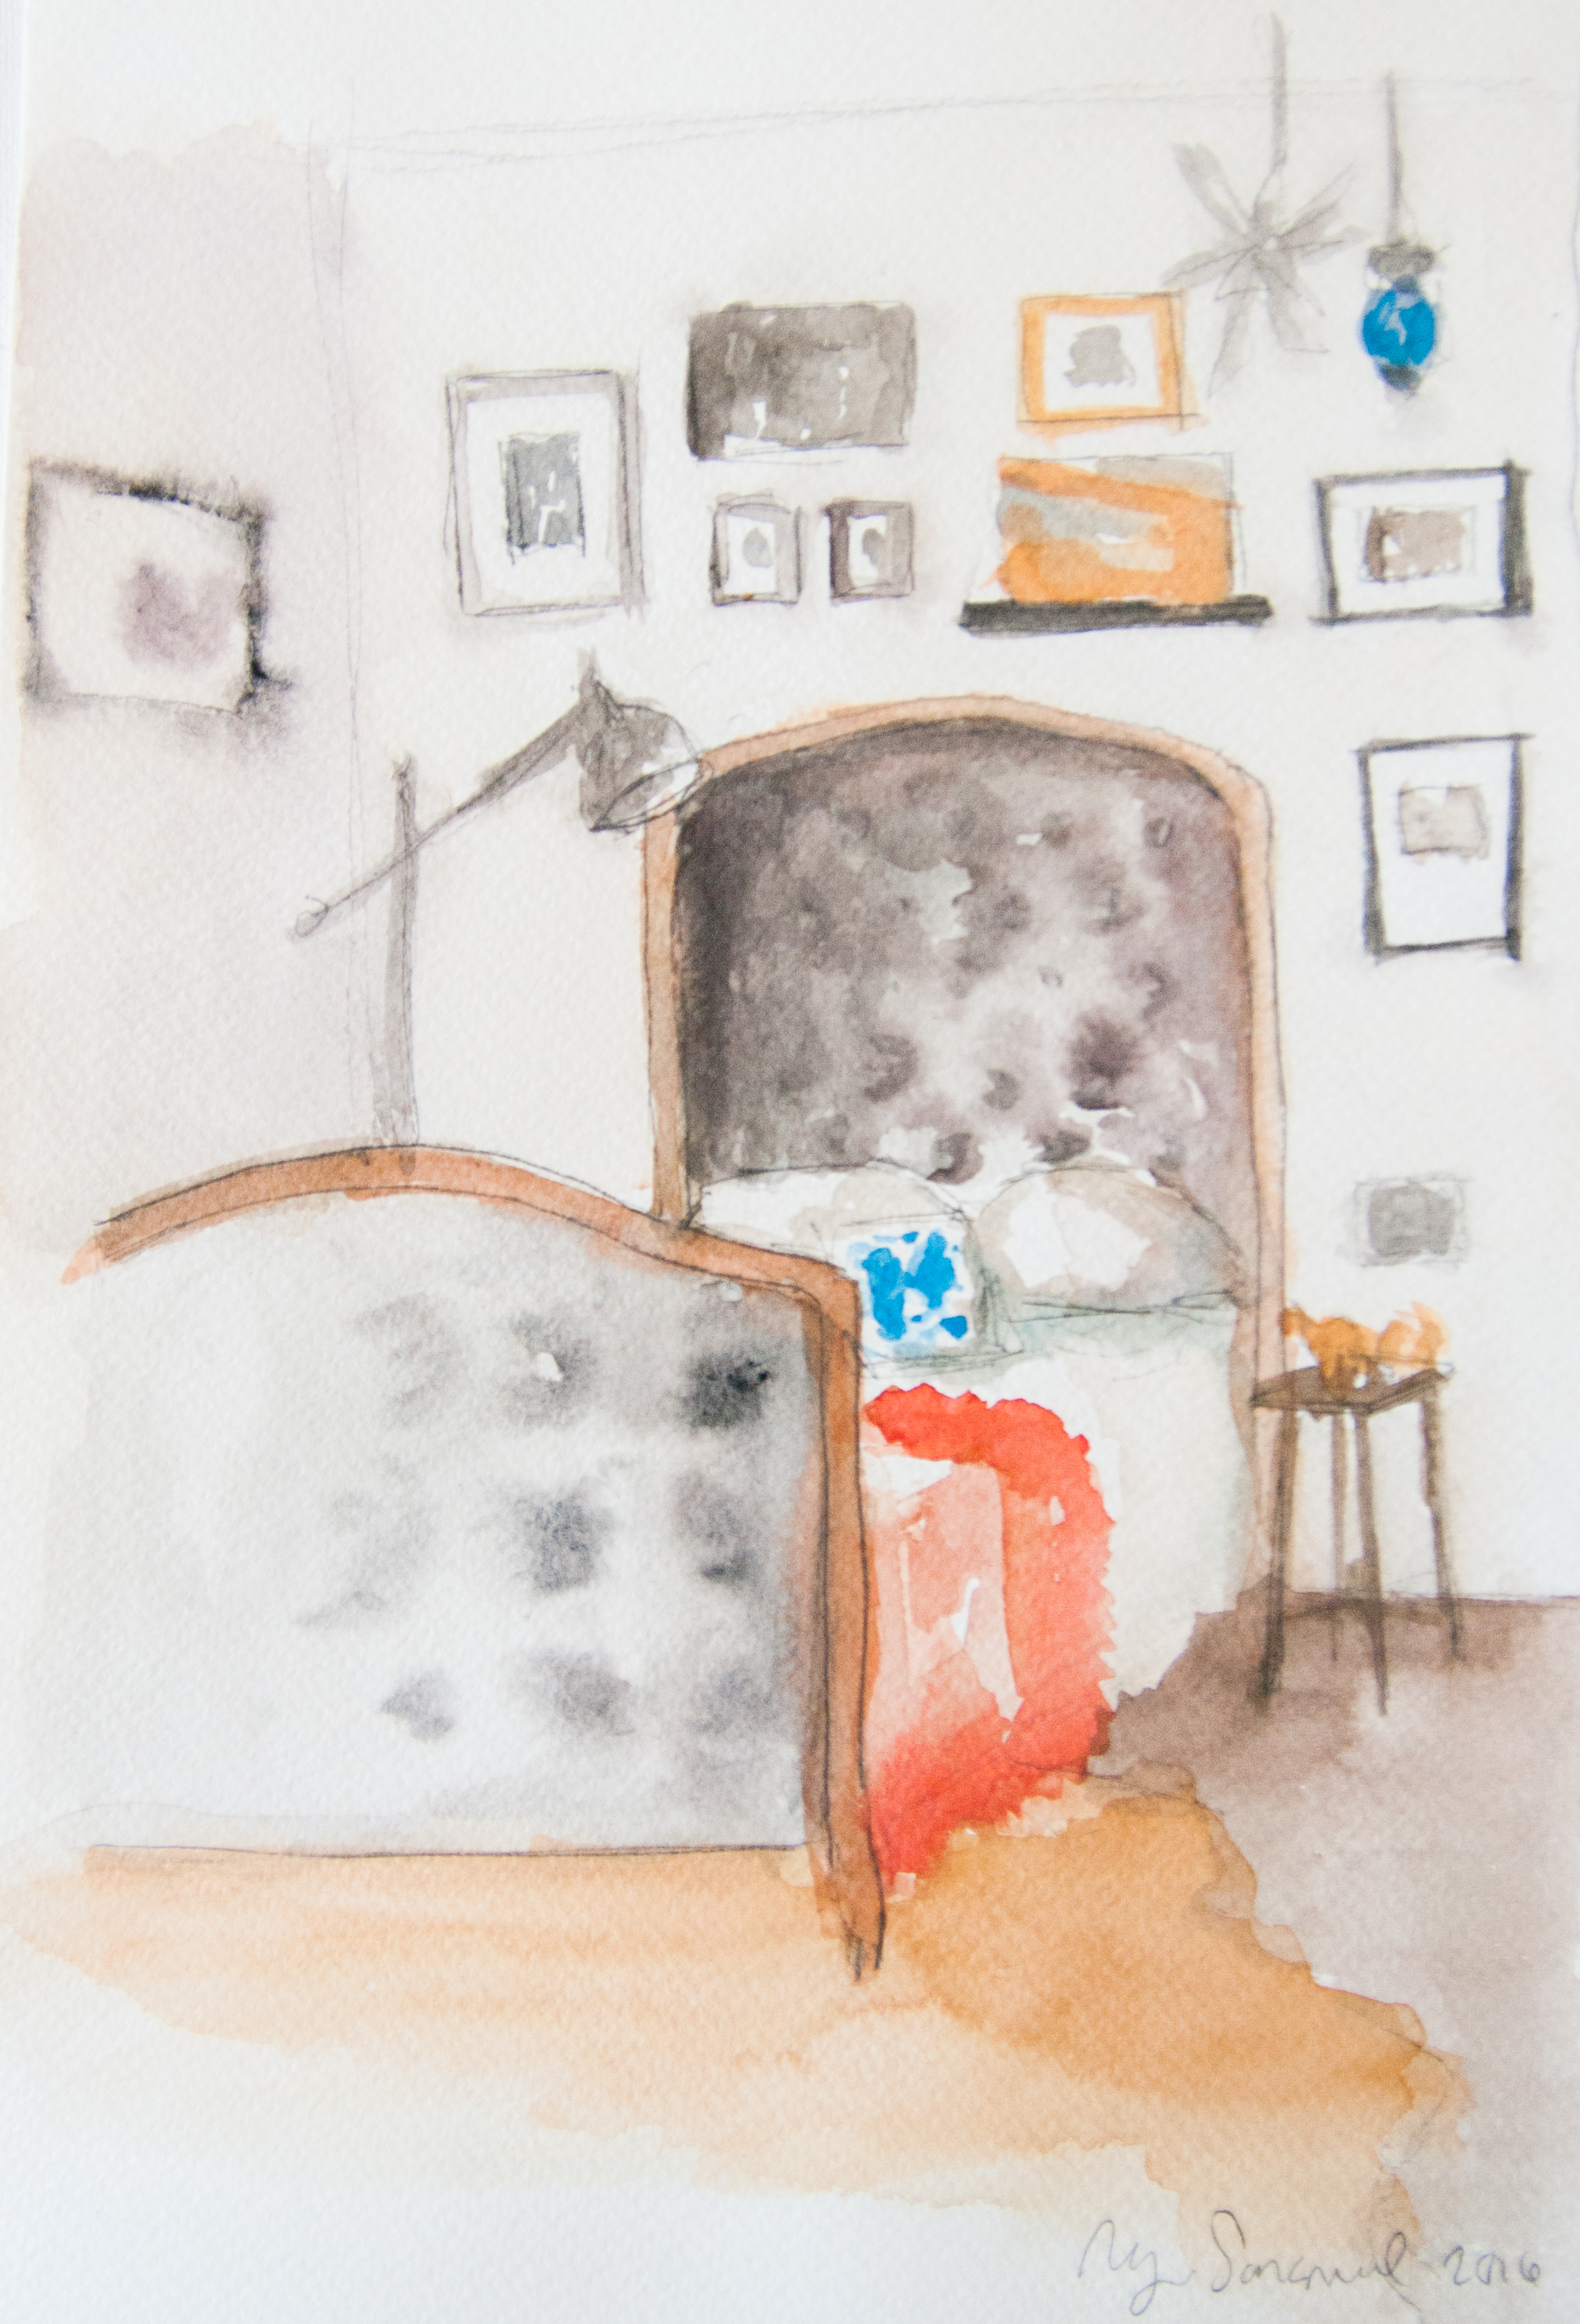 Bedroom 2. 20x29cm. Watercolor and graphite on paper. 2016.